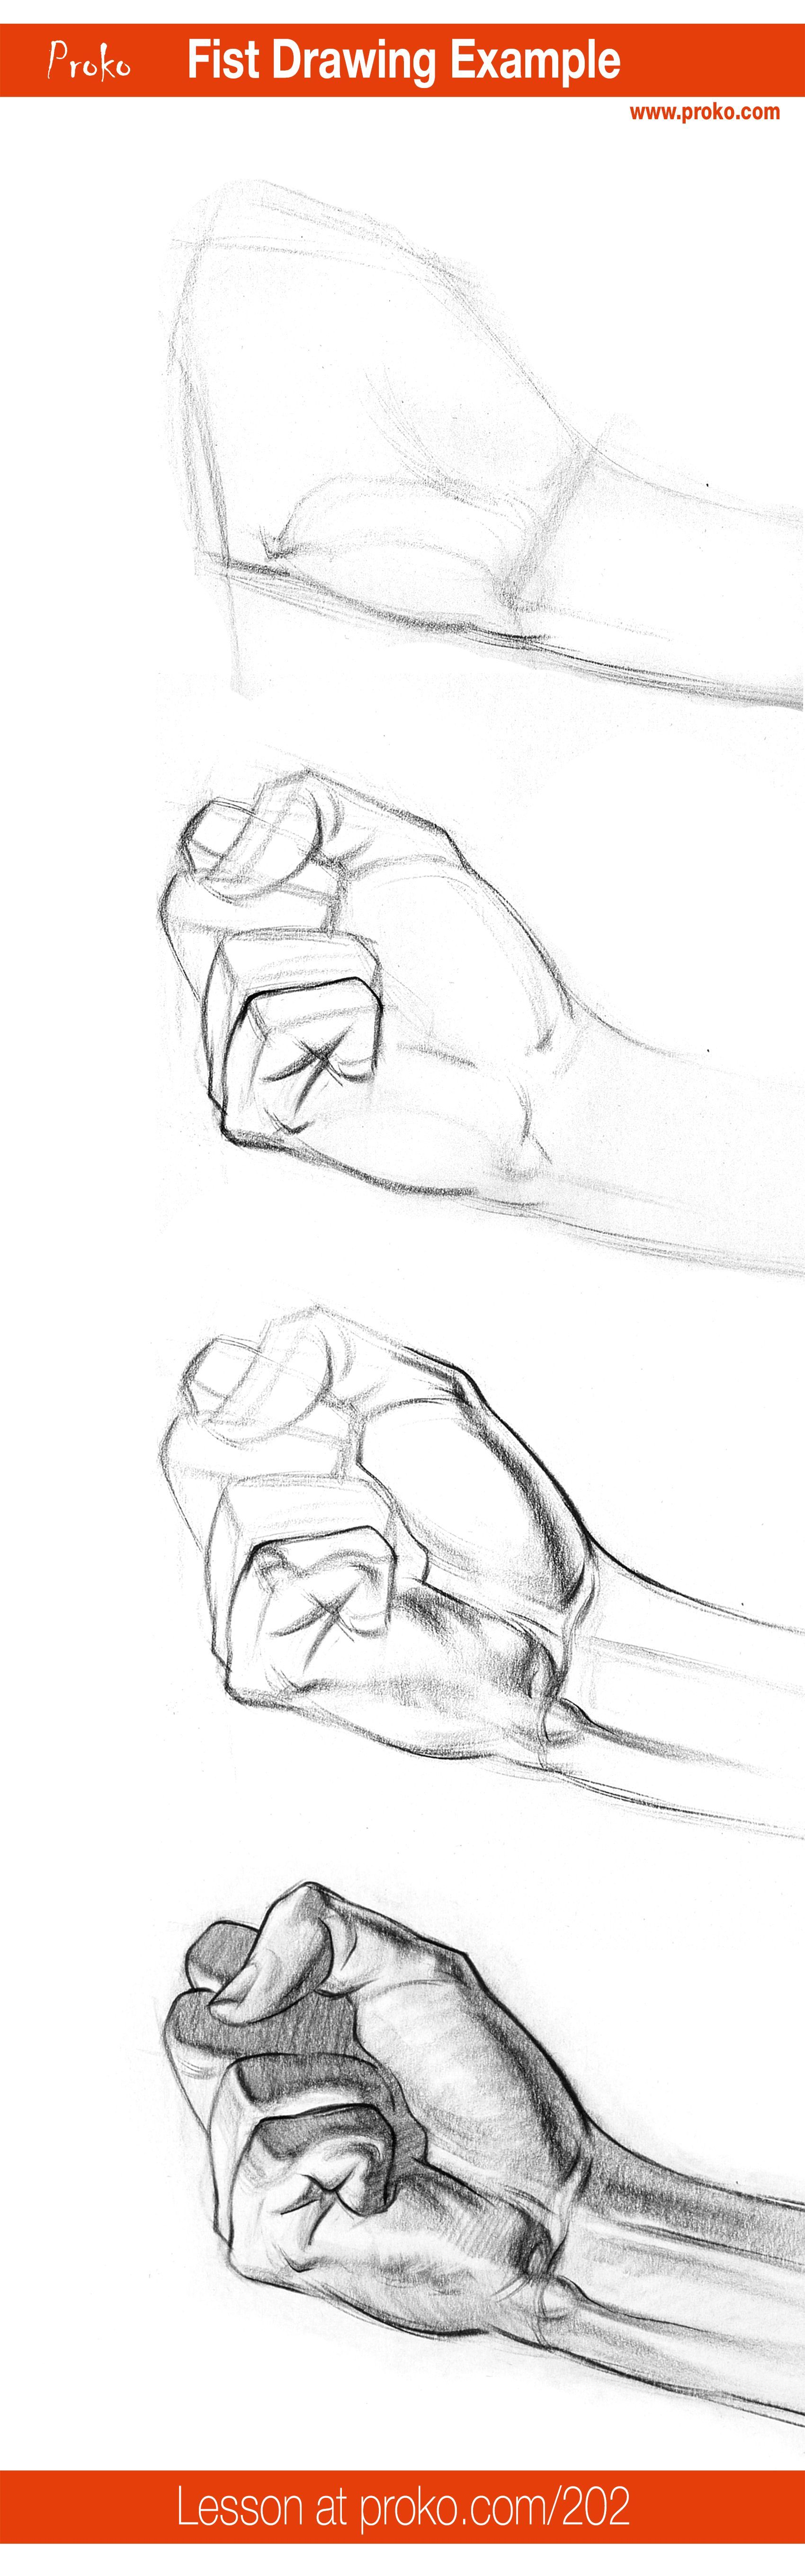 How to Draw a Fist – Hand Drawing Example | Anatomy, Drawings and ...